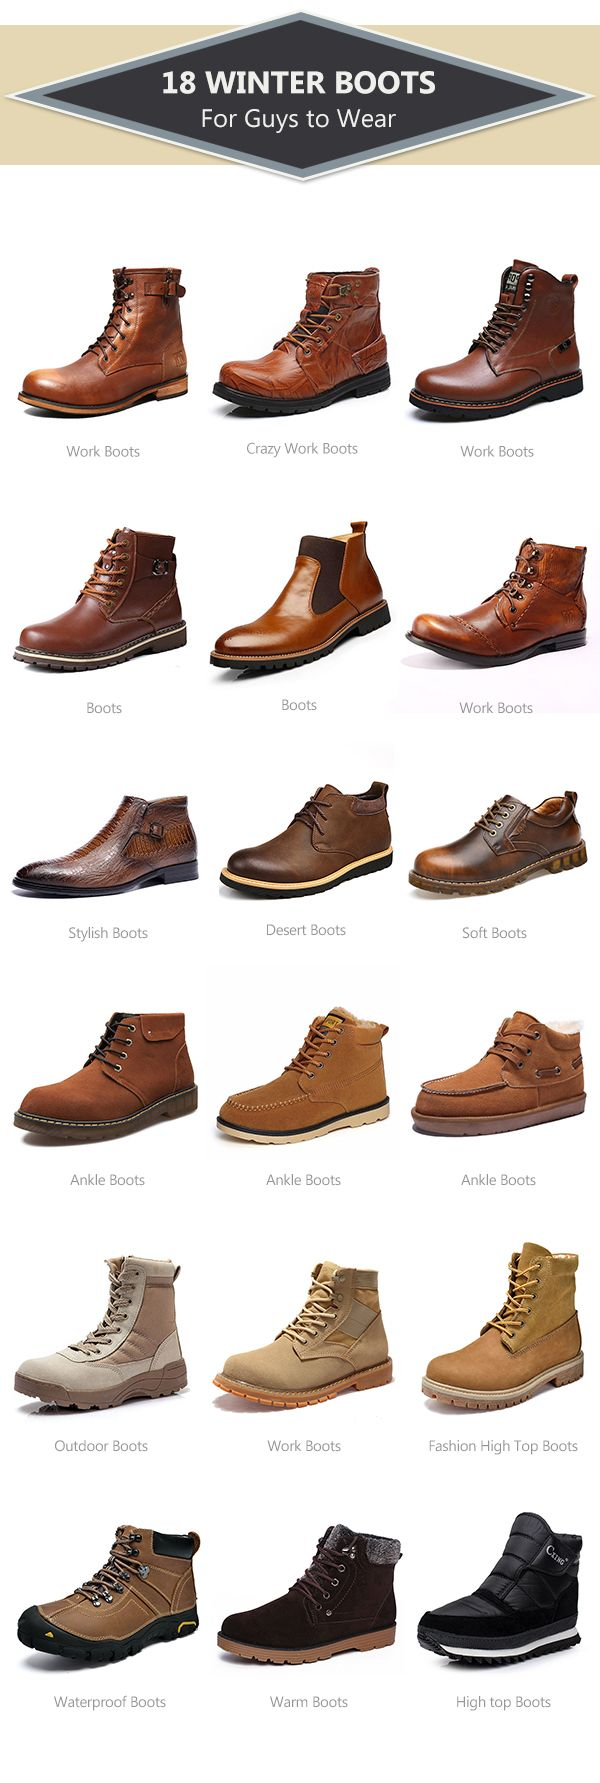 18Winter Boots for Guys to Wear.How to wear in winter/fall outwork.Stock your closet with these. Plus examples.